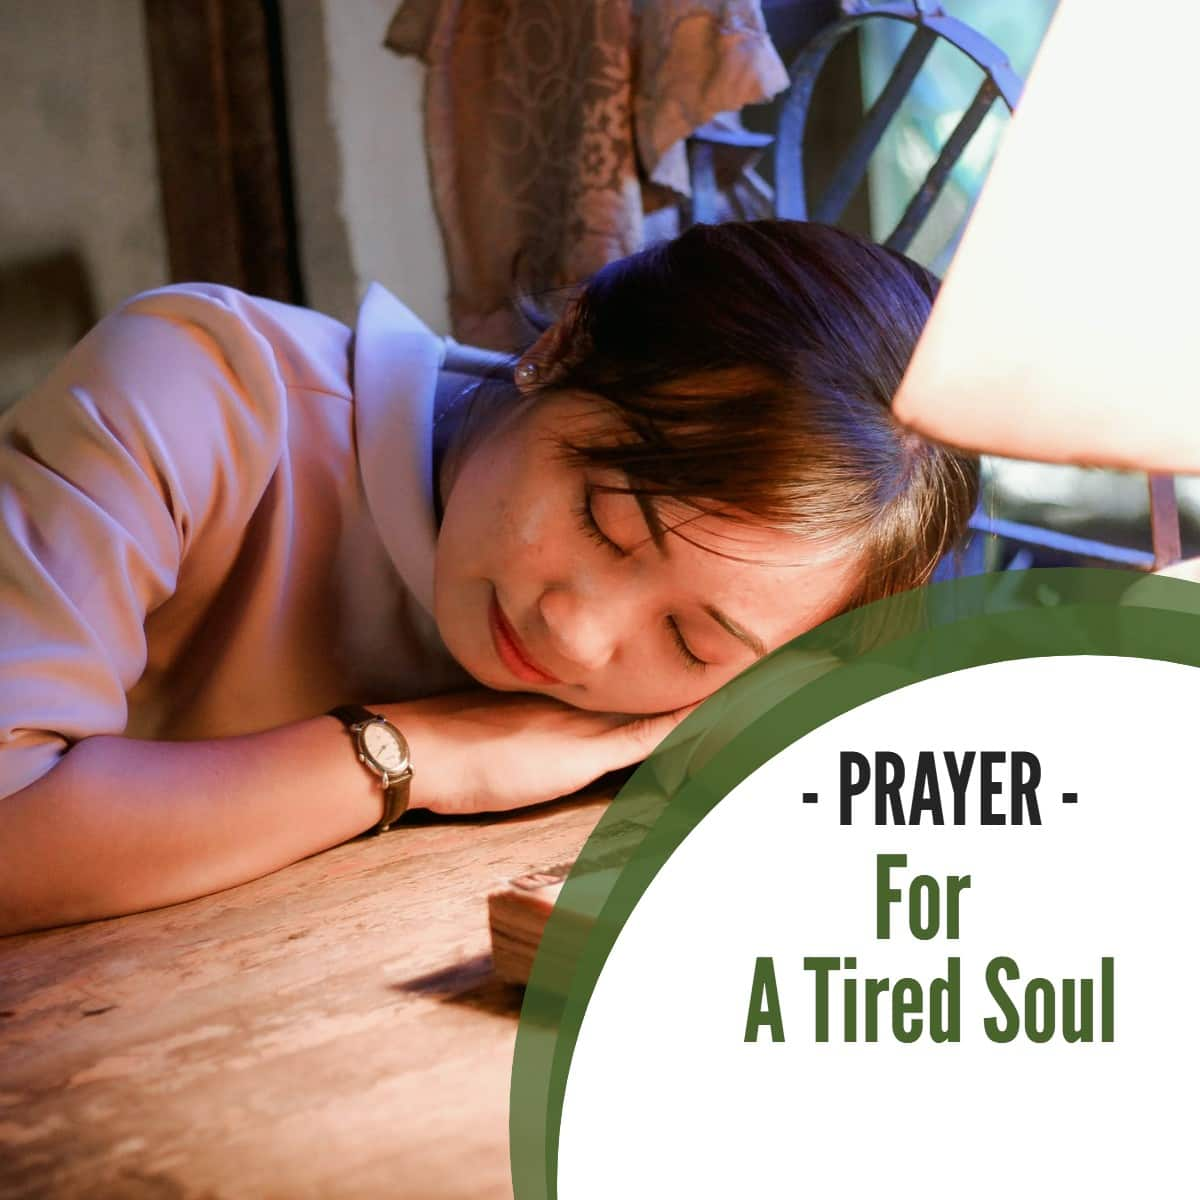 Prayer For A Tired Soul